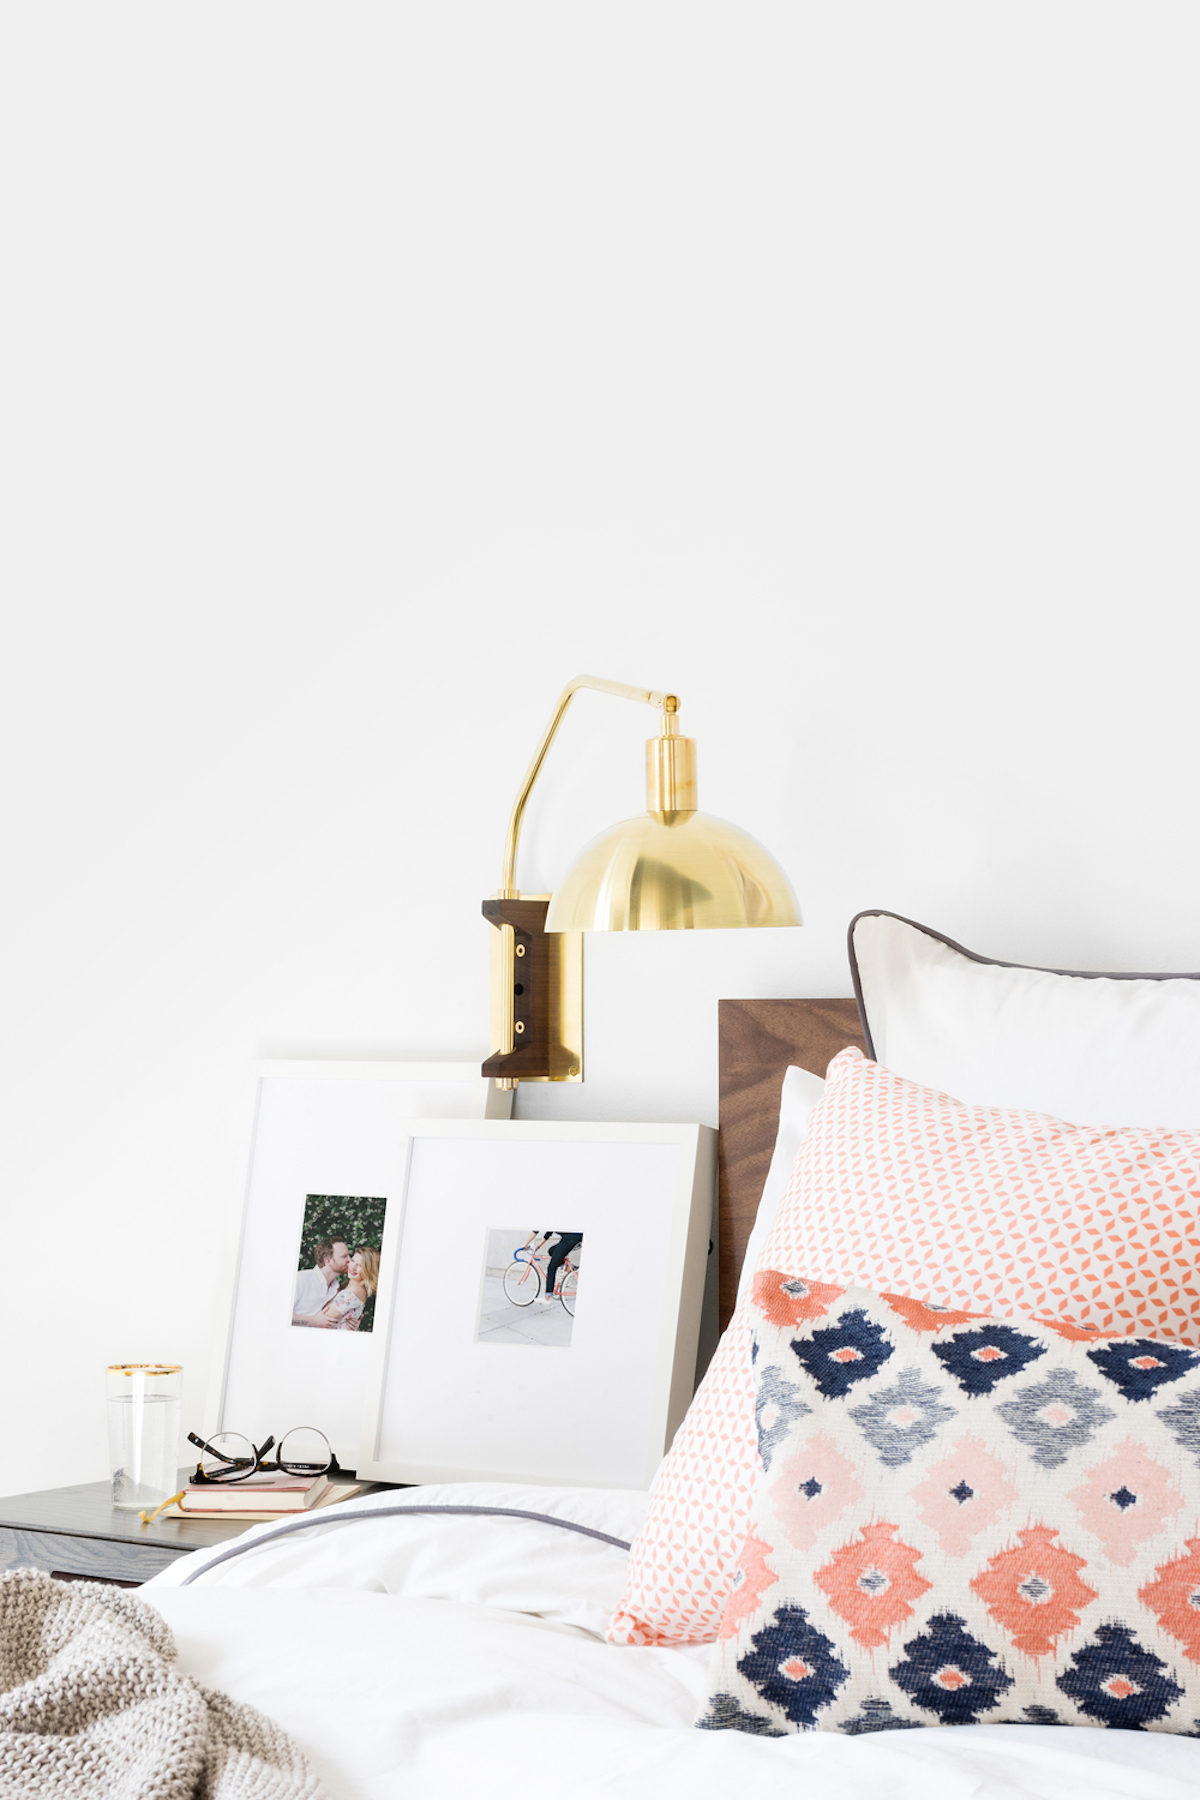 Two white frames on nightstand resting in layered fashion against the wall